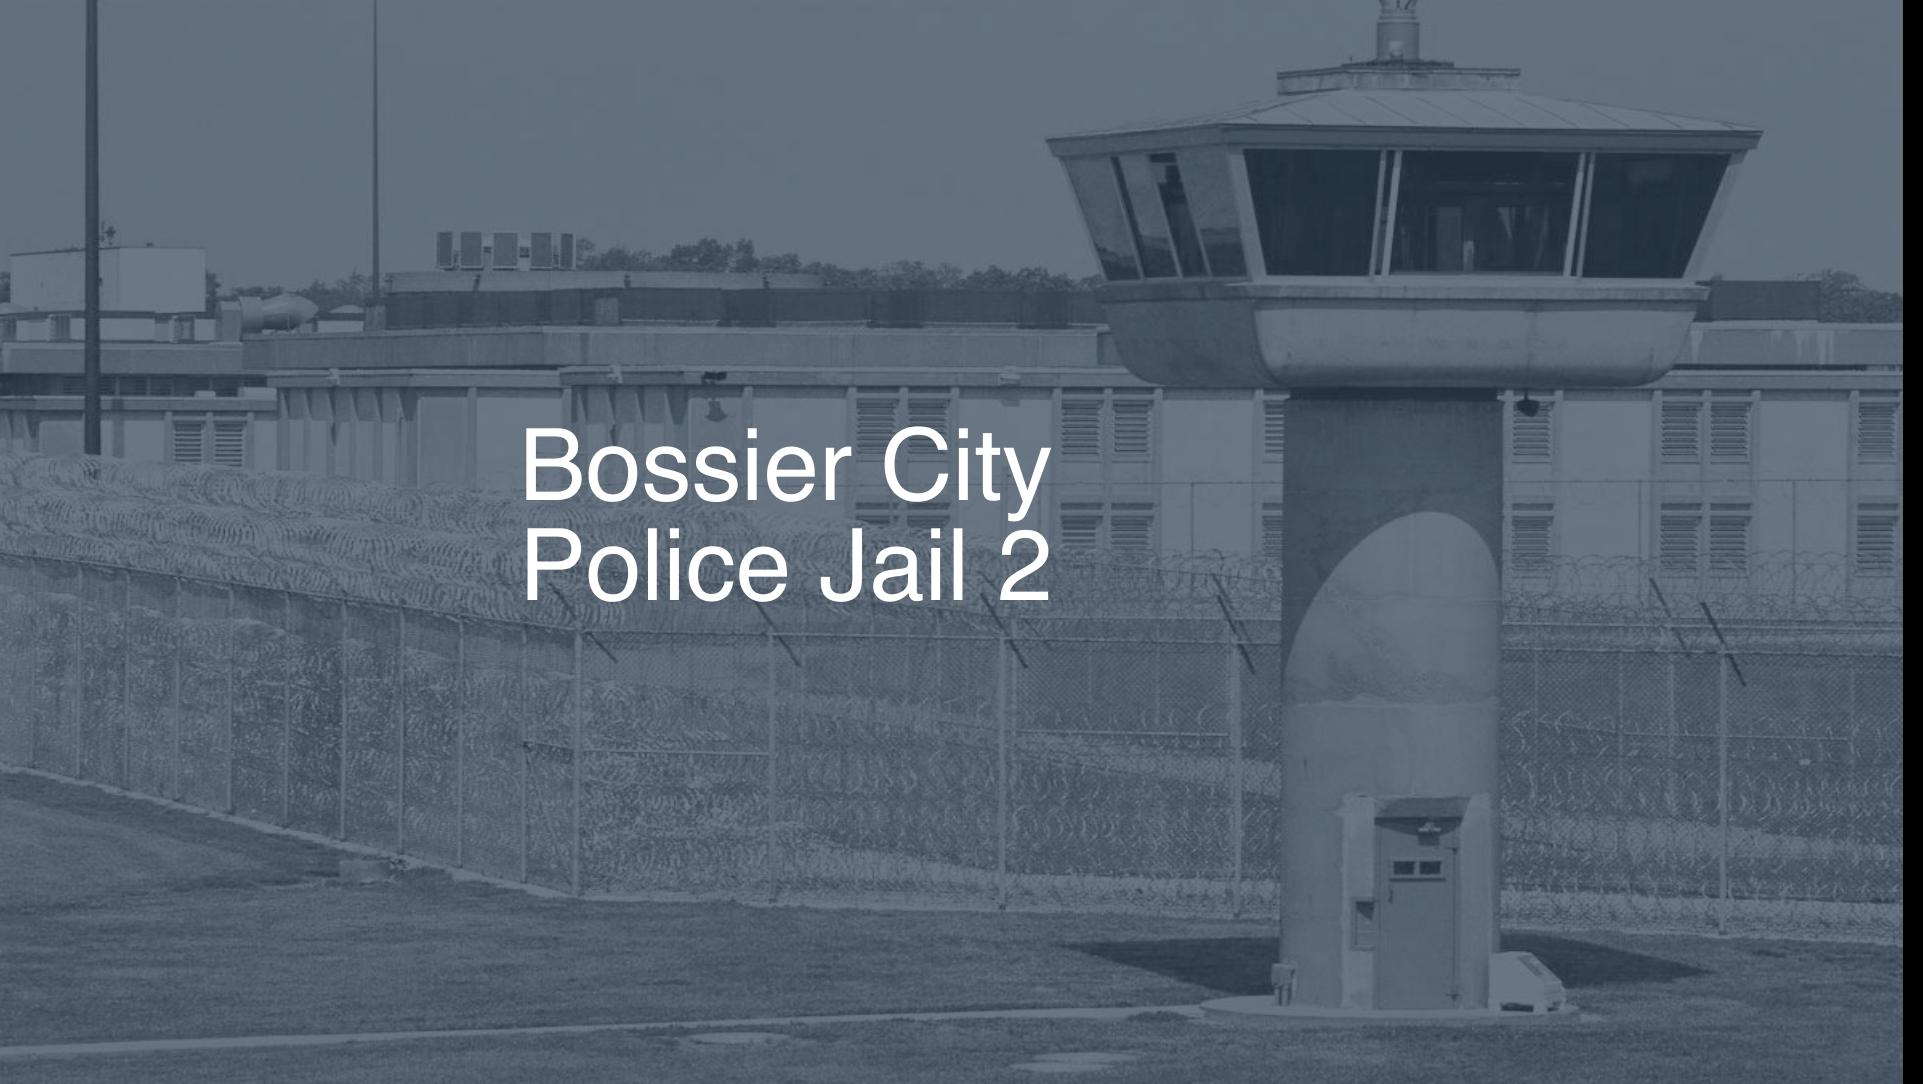 Bossier City Police Jail correctional facility picture